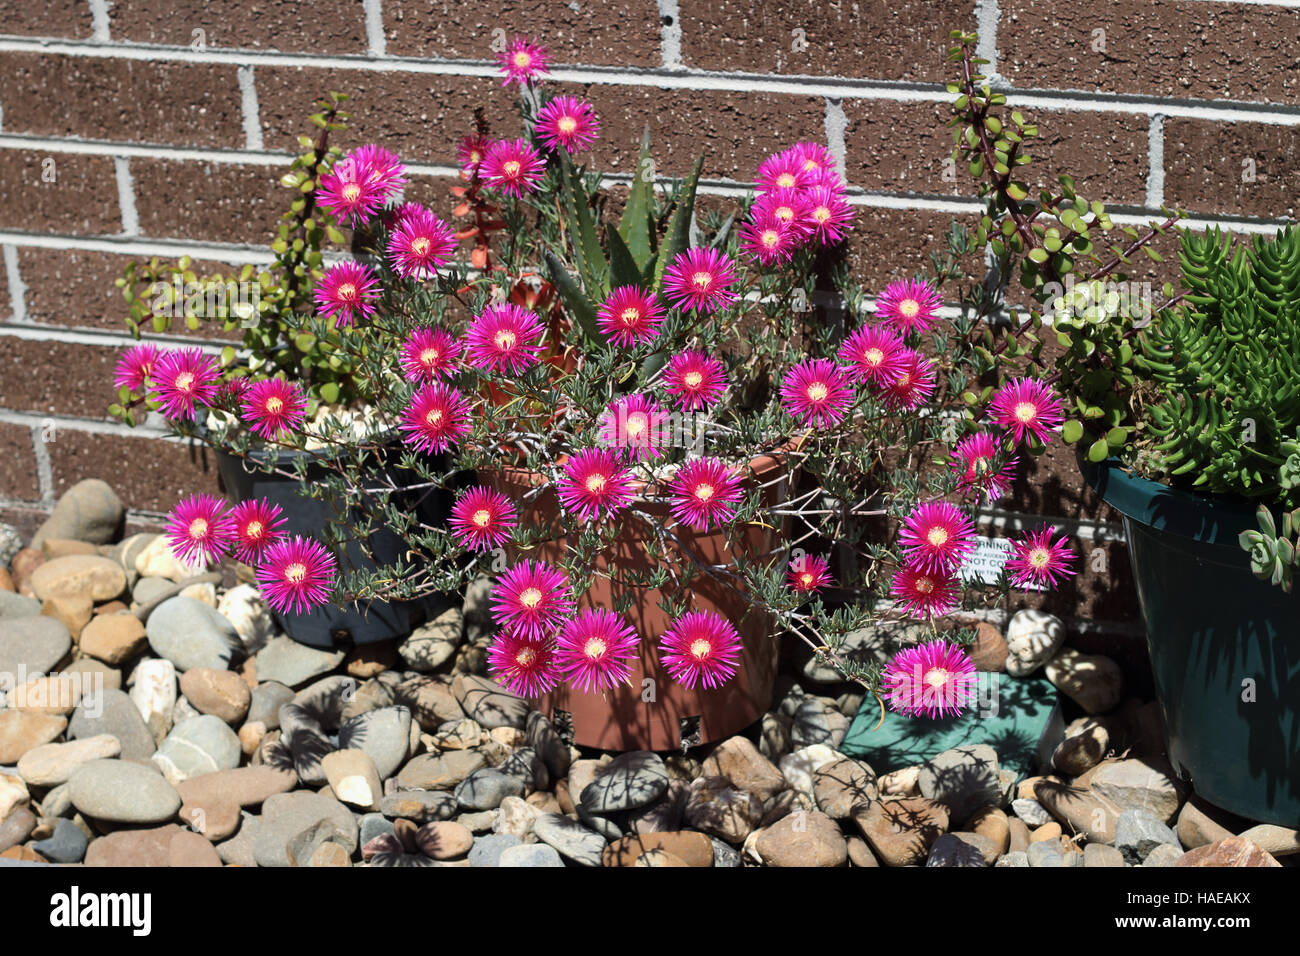 Pink Pig face flowers or Mesembryanthemum , ice plant flowers growing in a pot - Stock Image